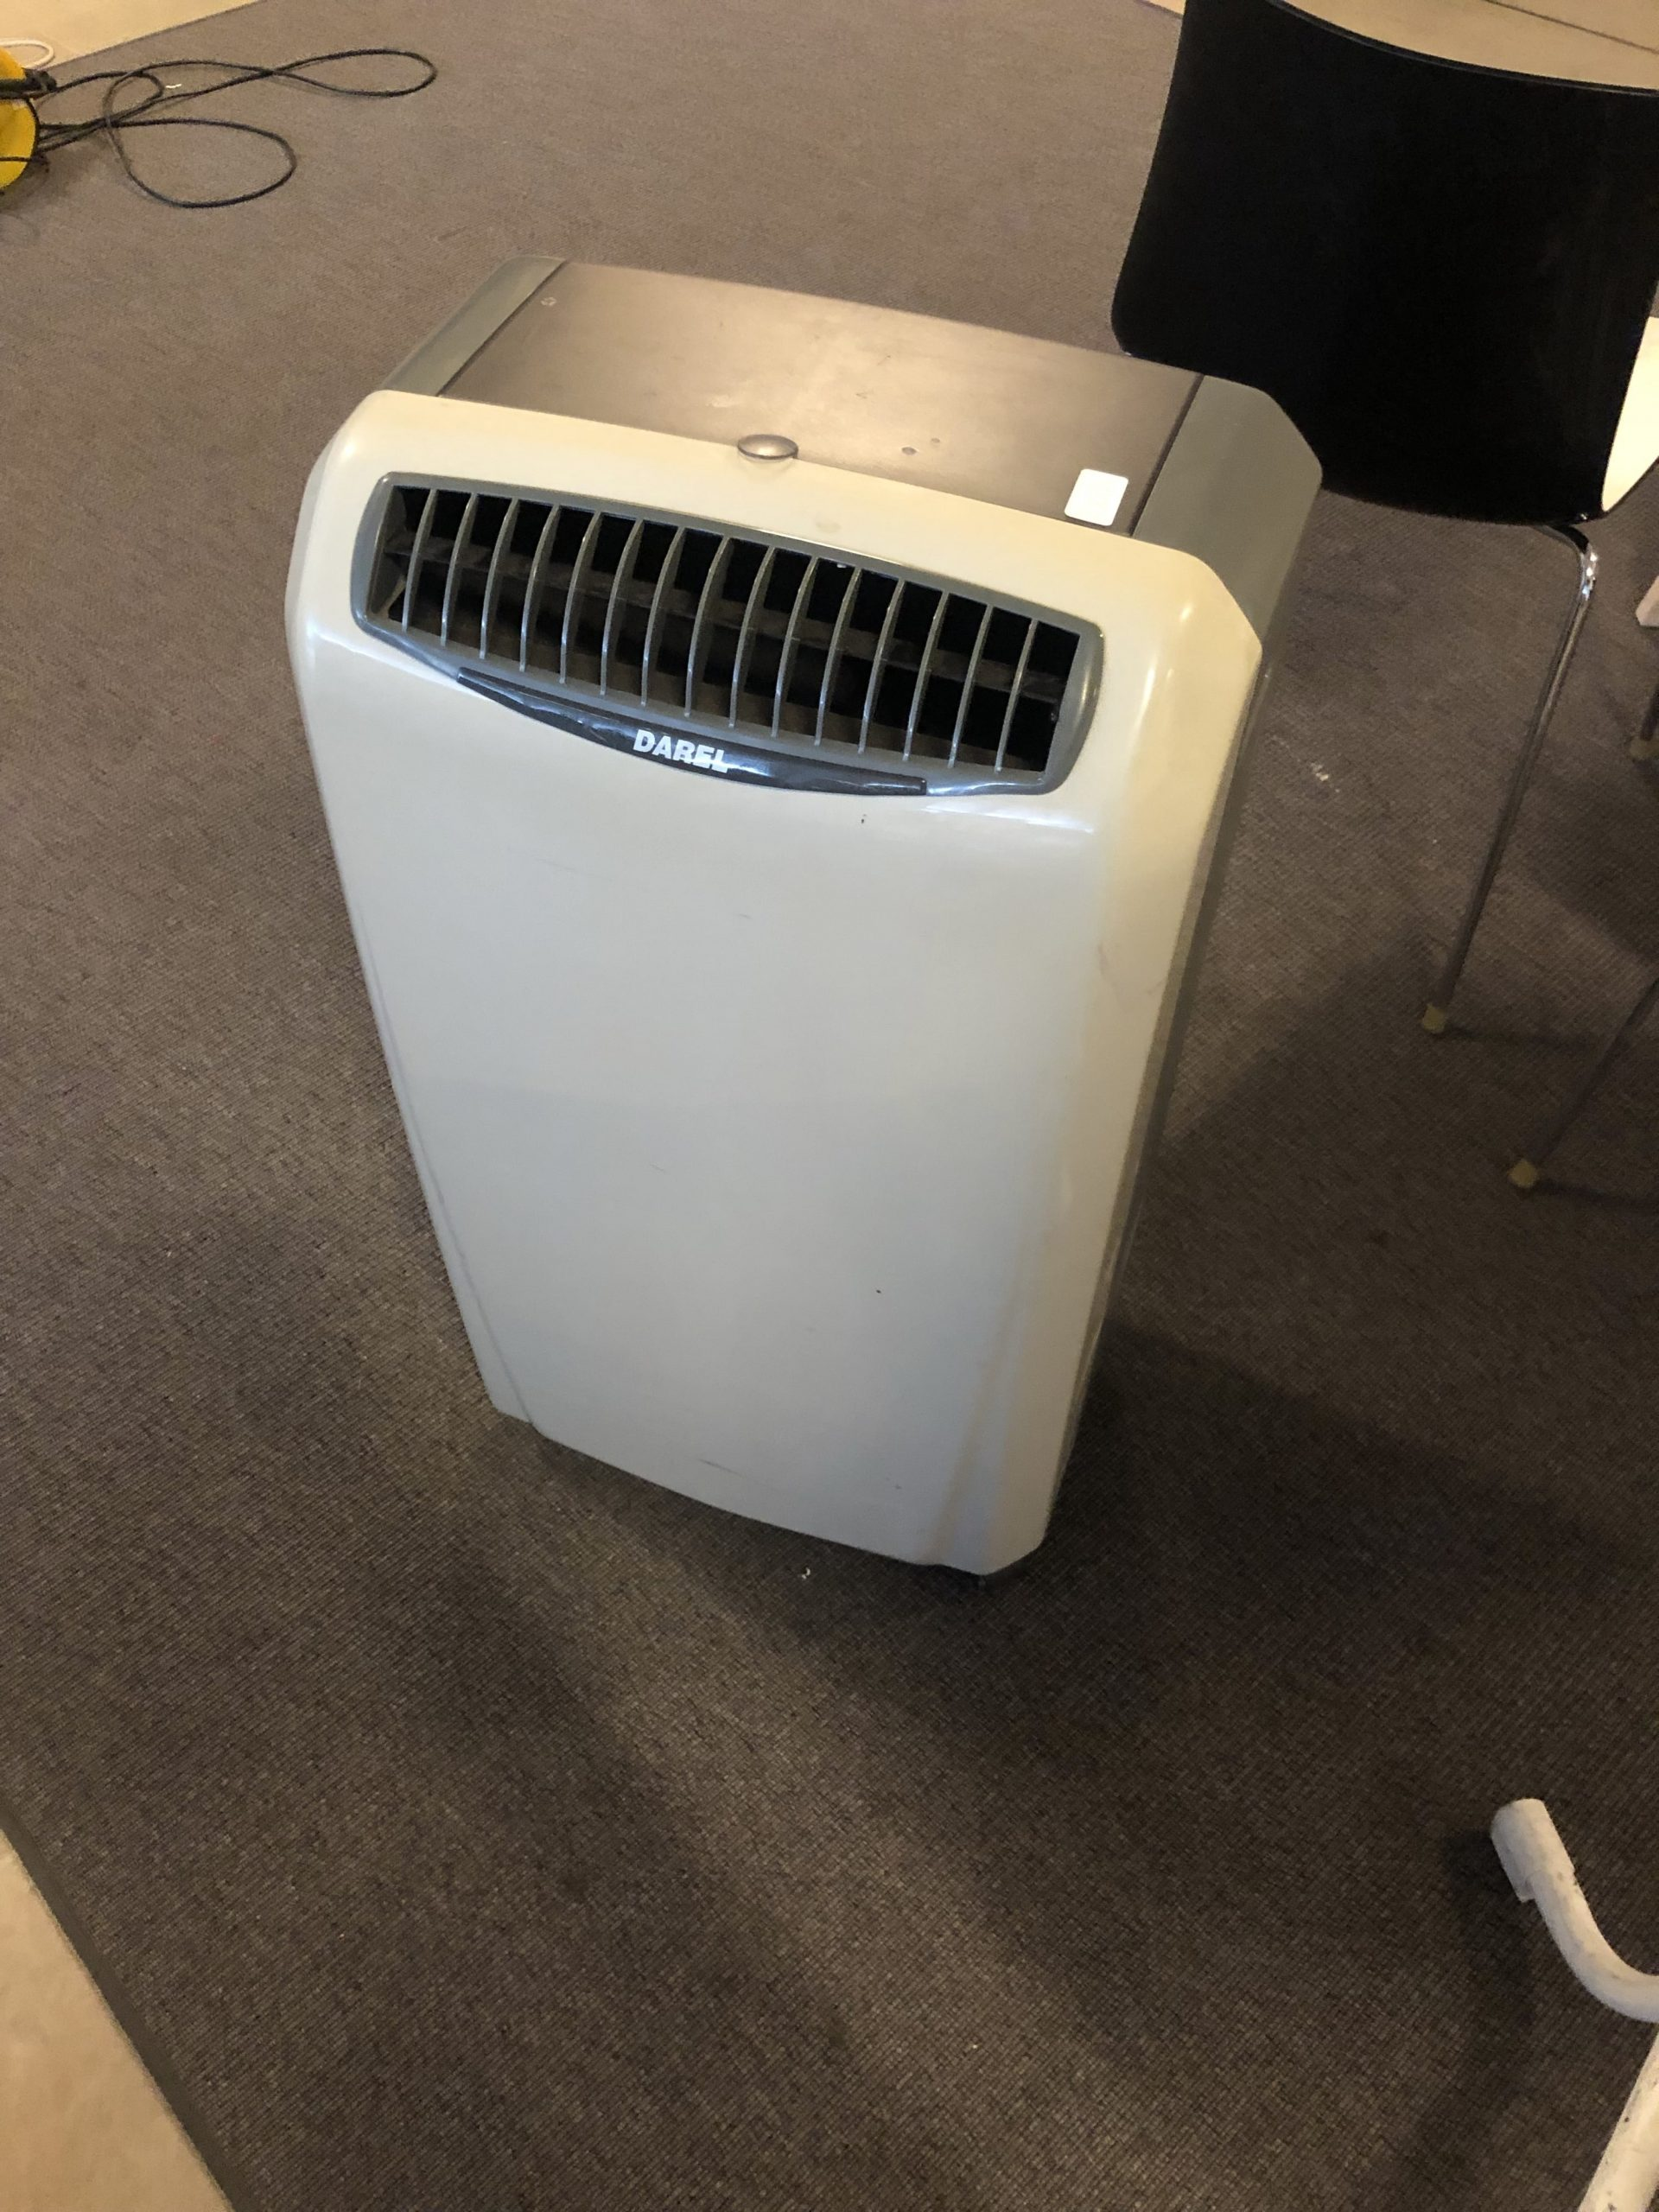 Aircondition / cooling system, DAREL, Type M7000